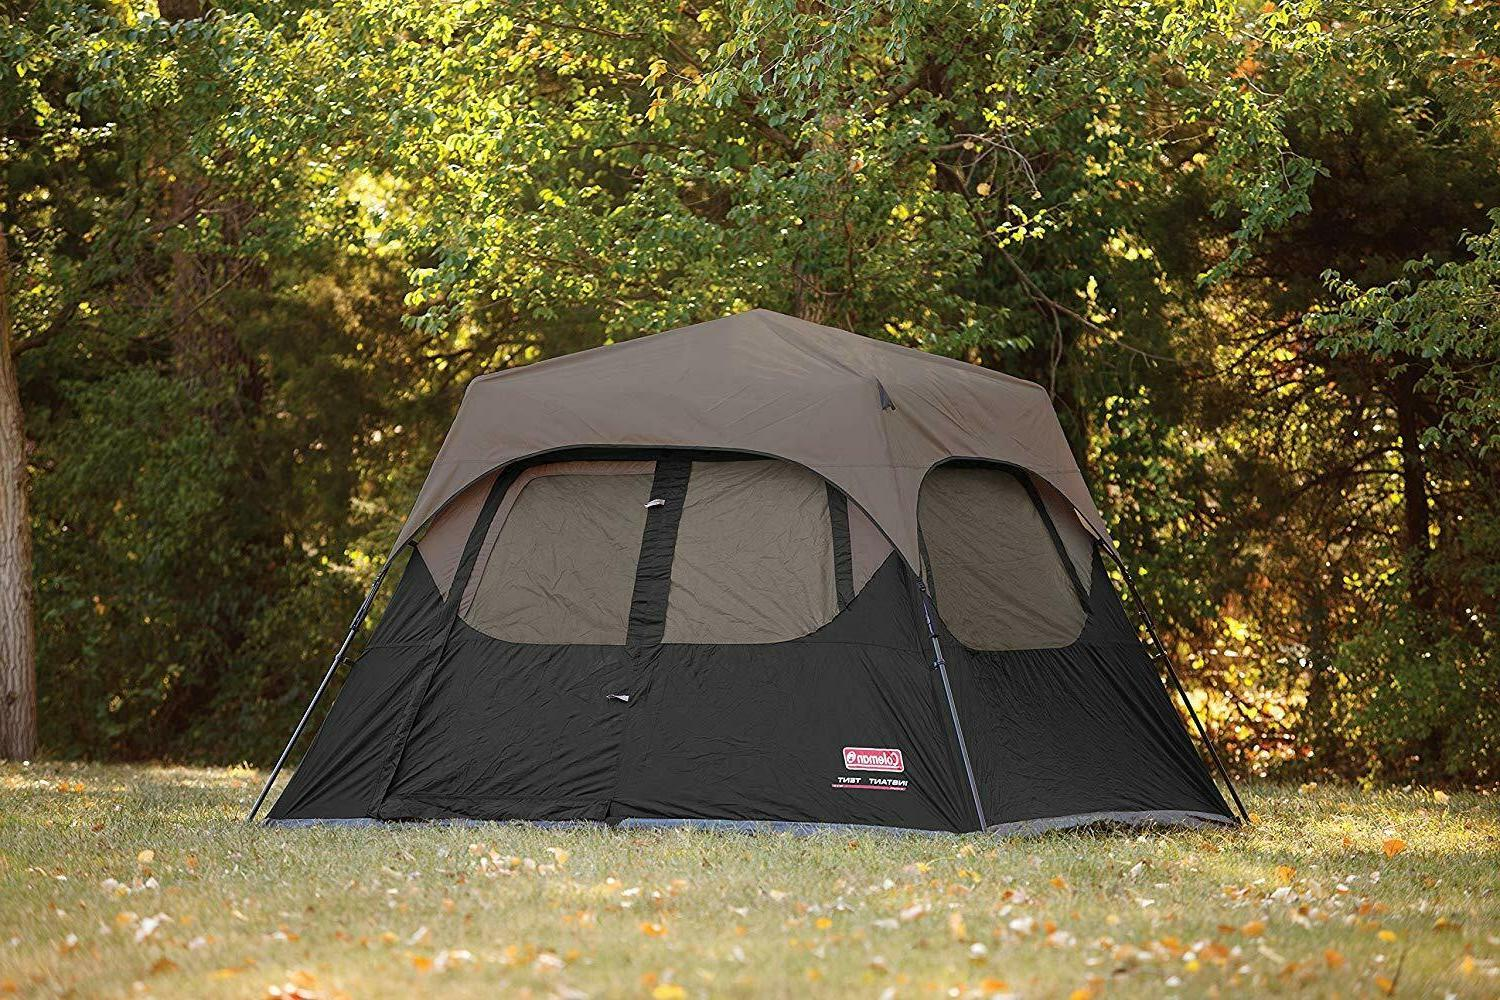 Tent Camping Hiking Outdoor Rain Fly Easy setup Coleman 6-Pe